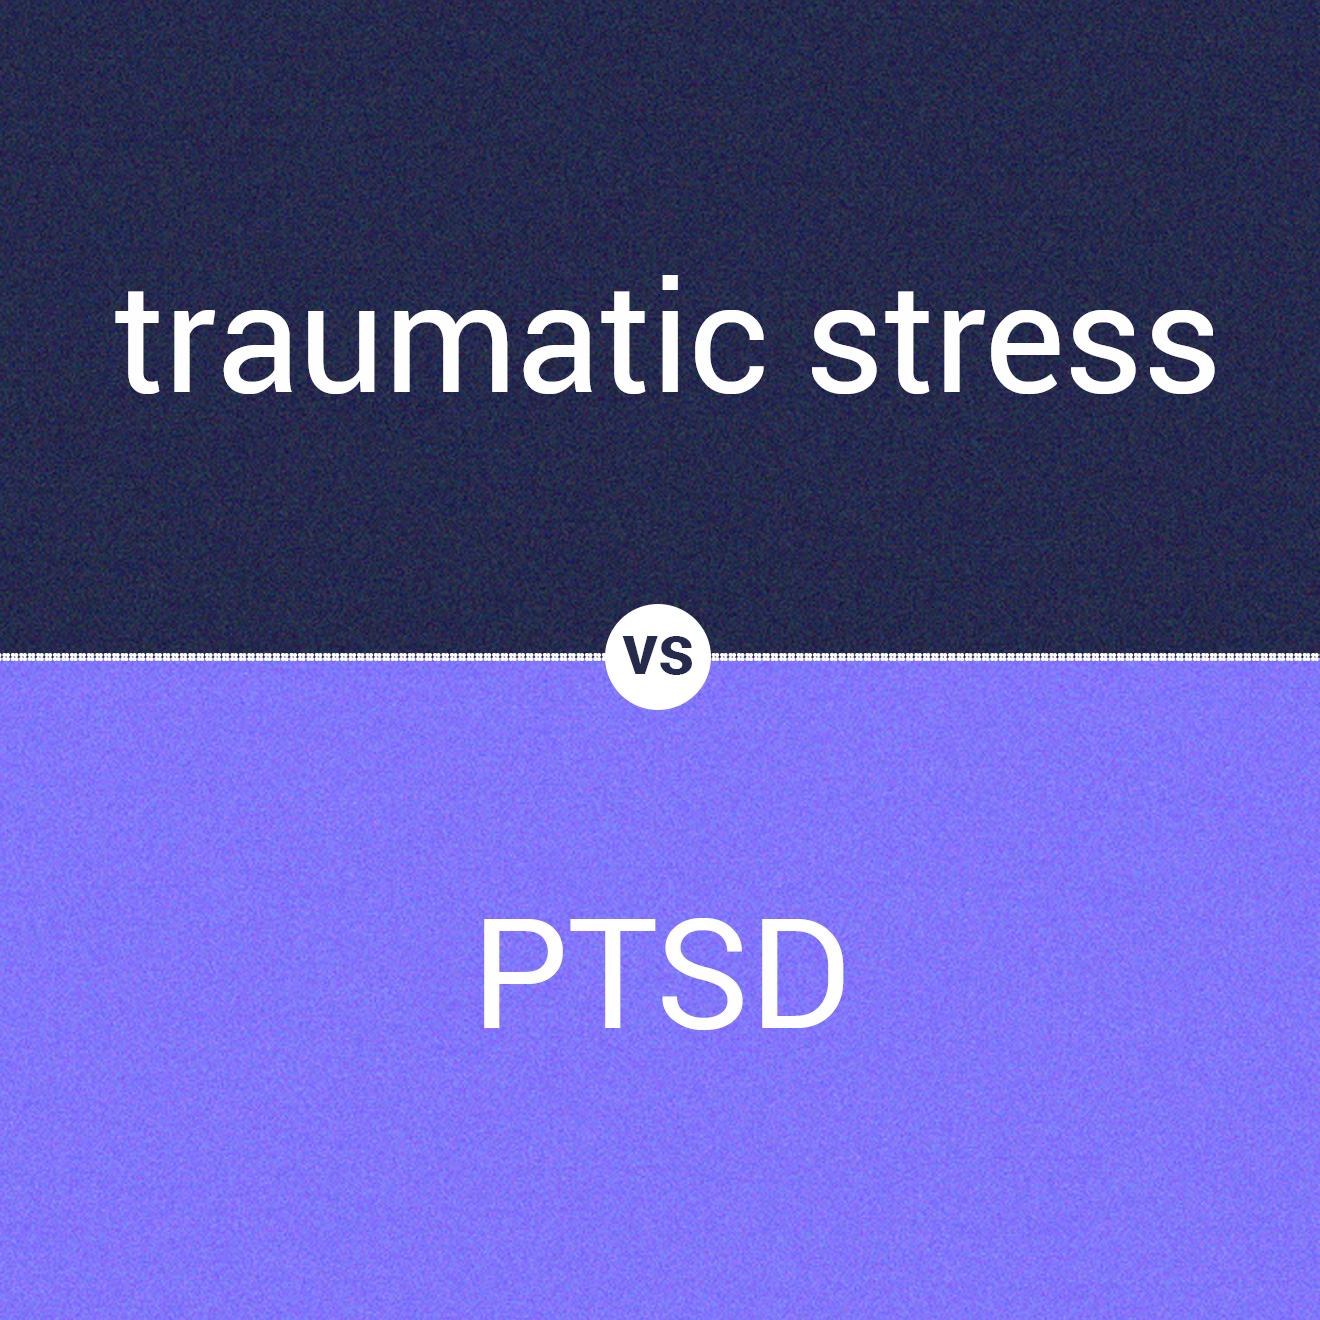 traumatic stress vs. PTSD image